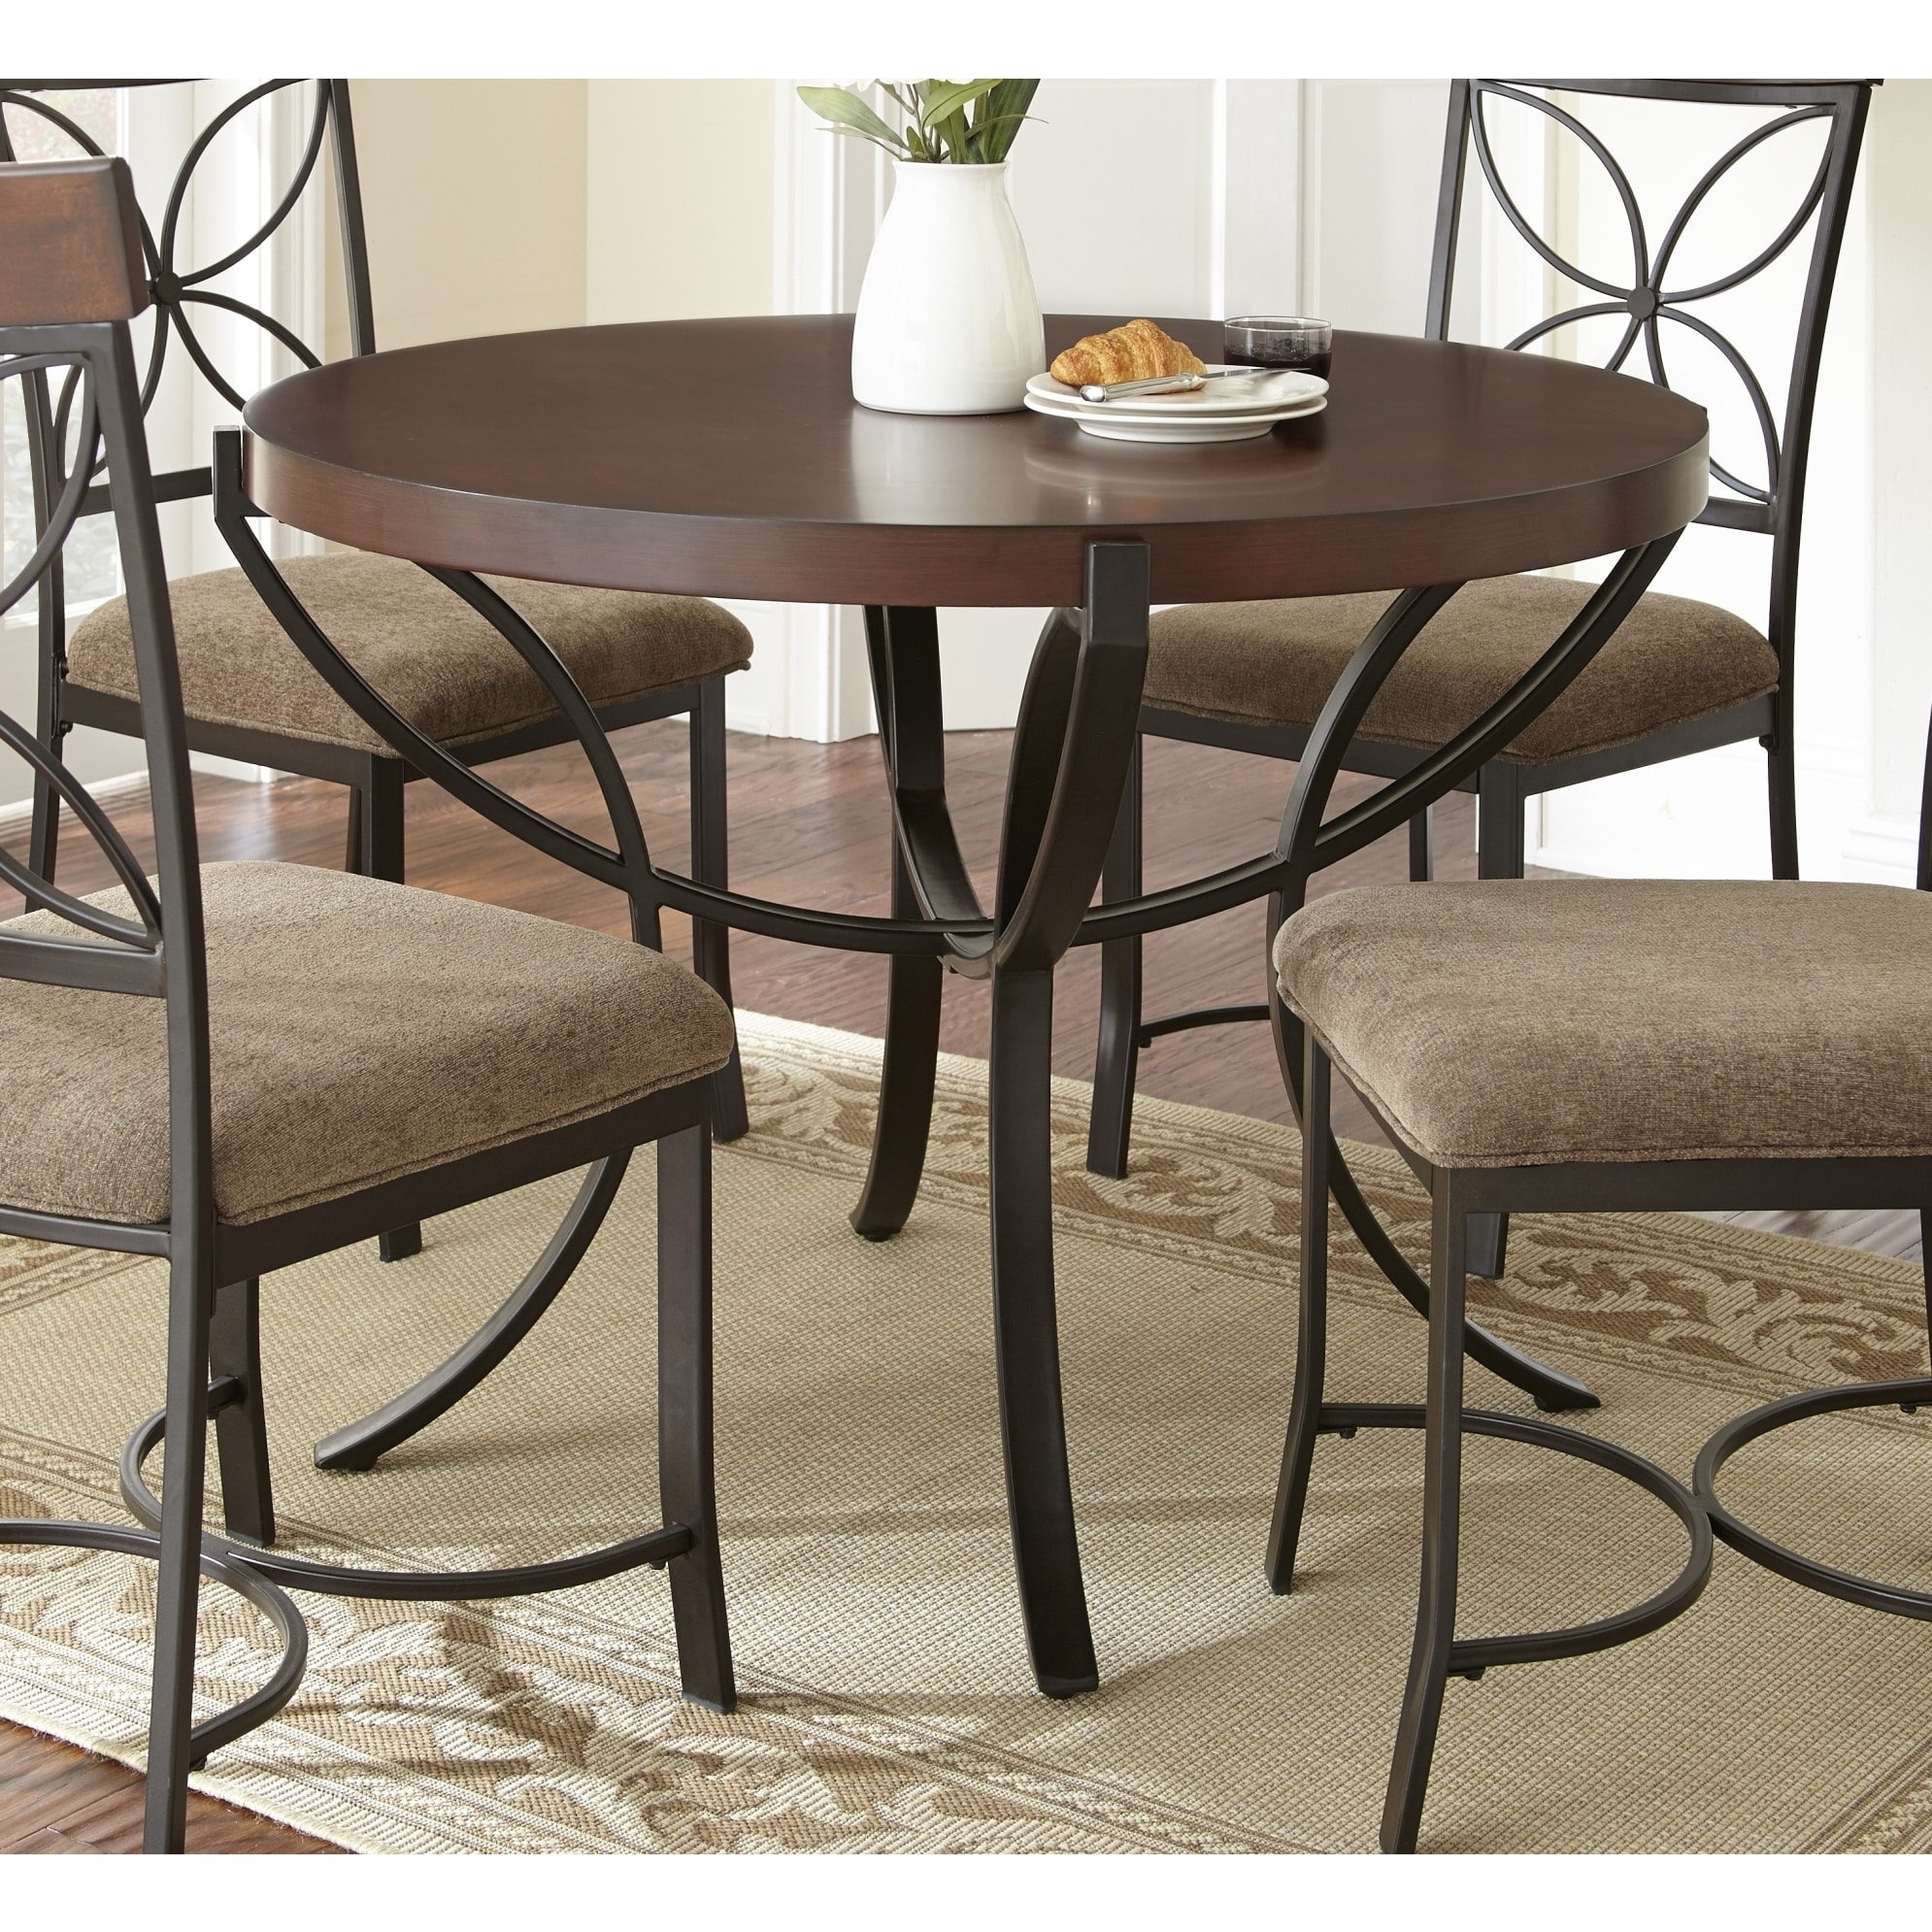 42 inch round dining table in oak and white contemporary dining